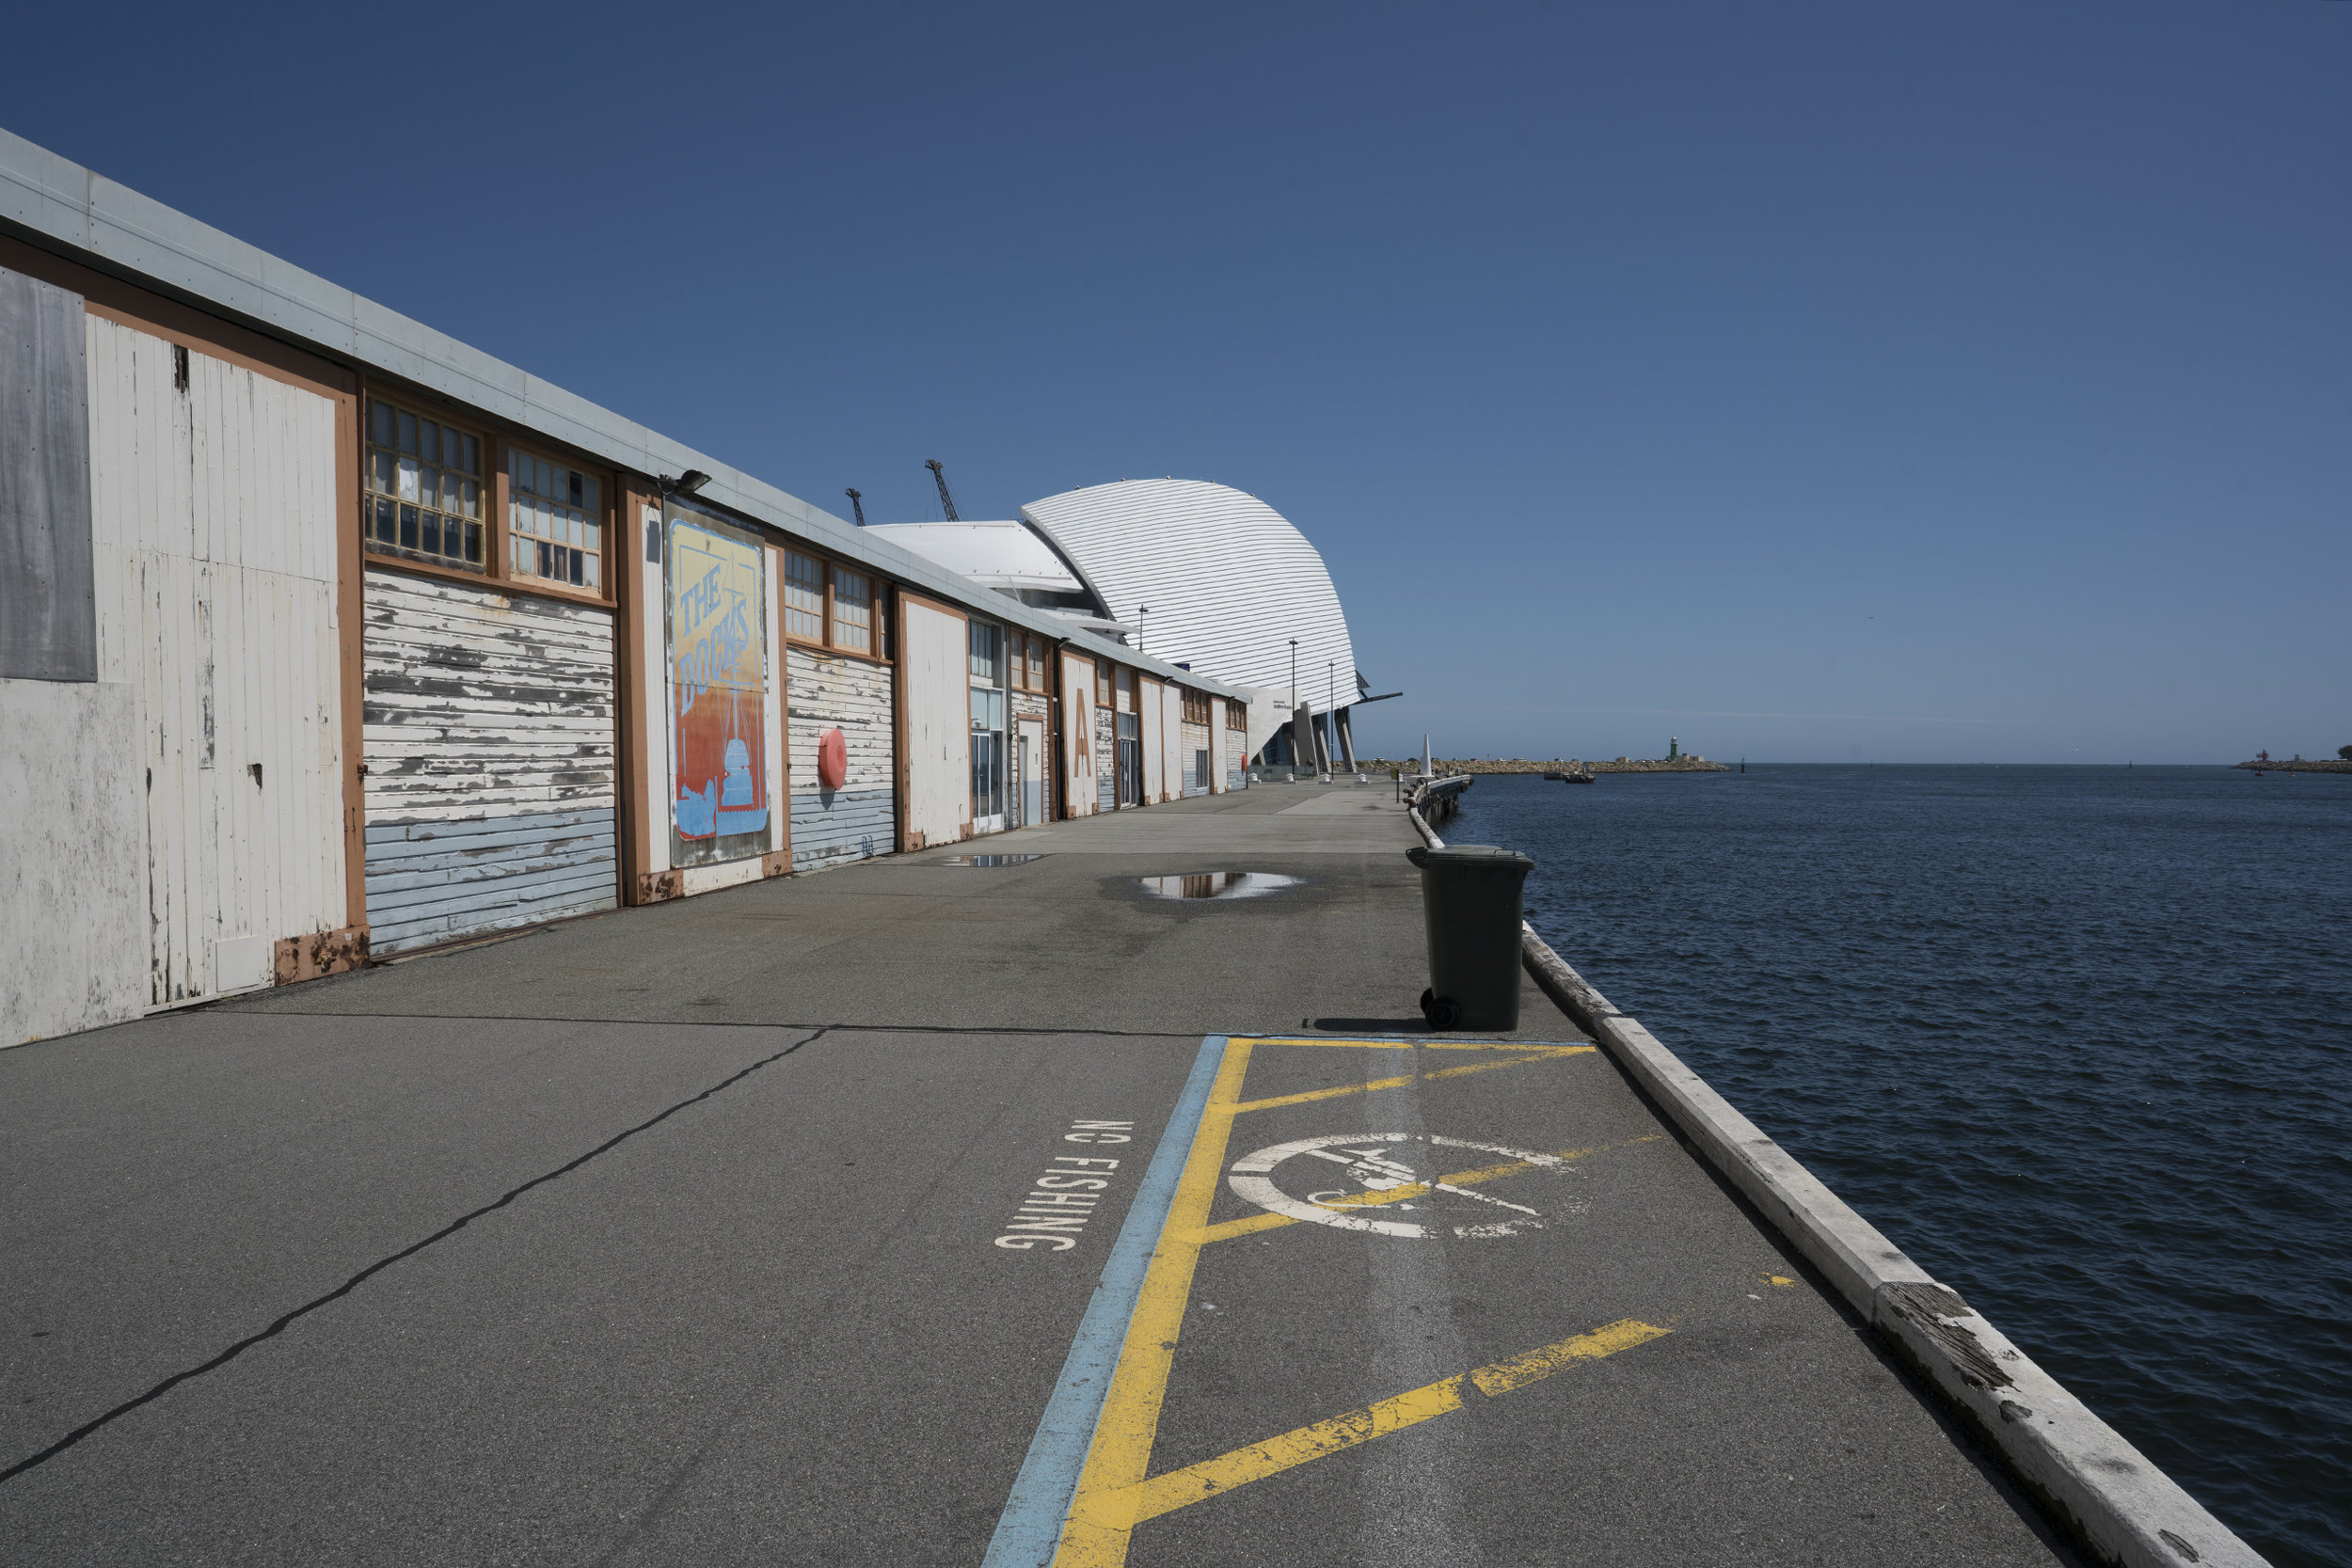 Plate 2: The walk on the waterfront towards the Maritime Museum